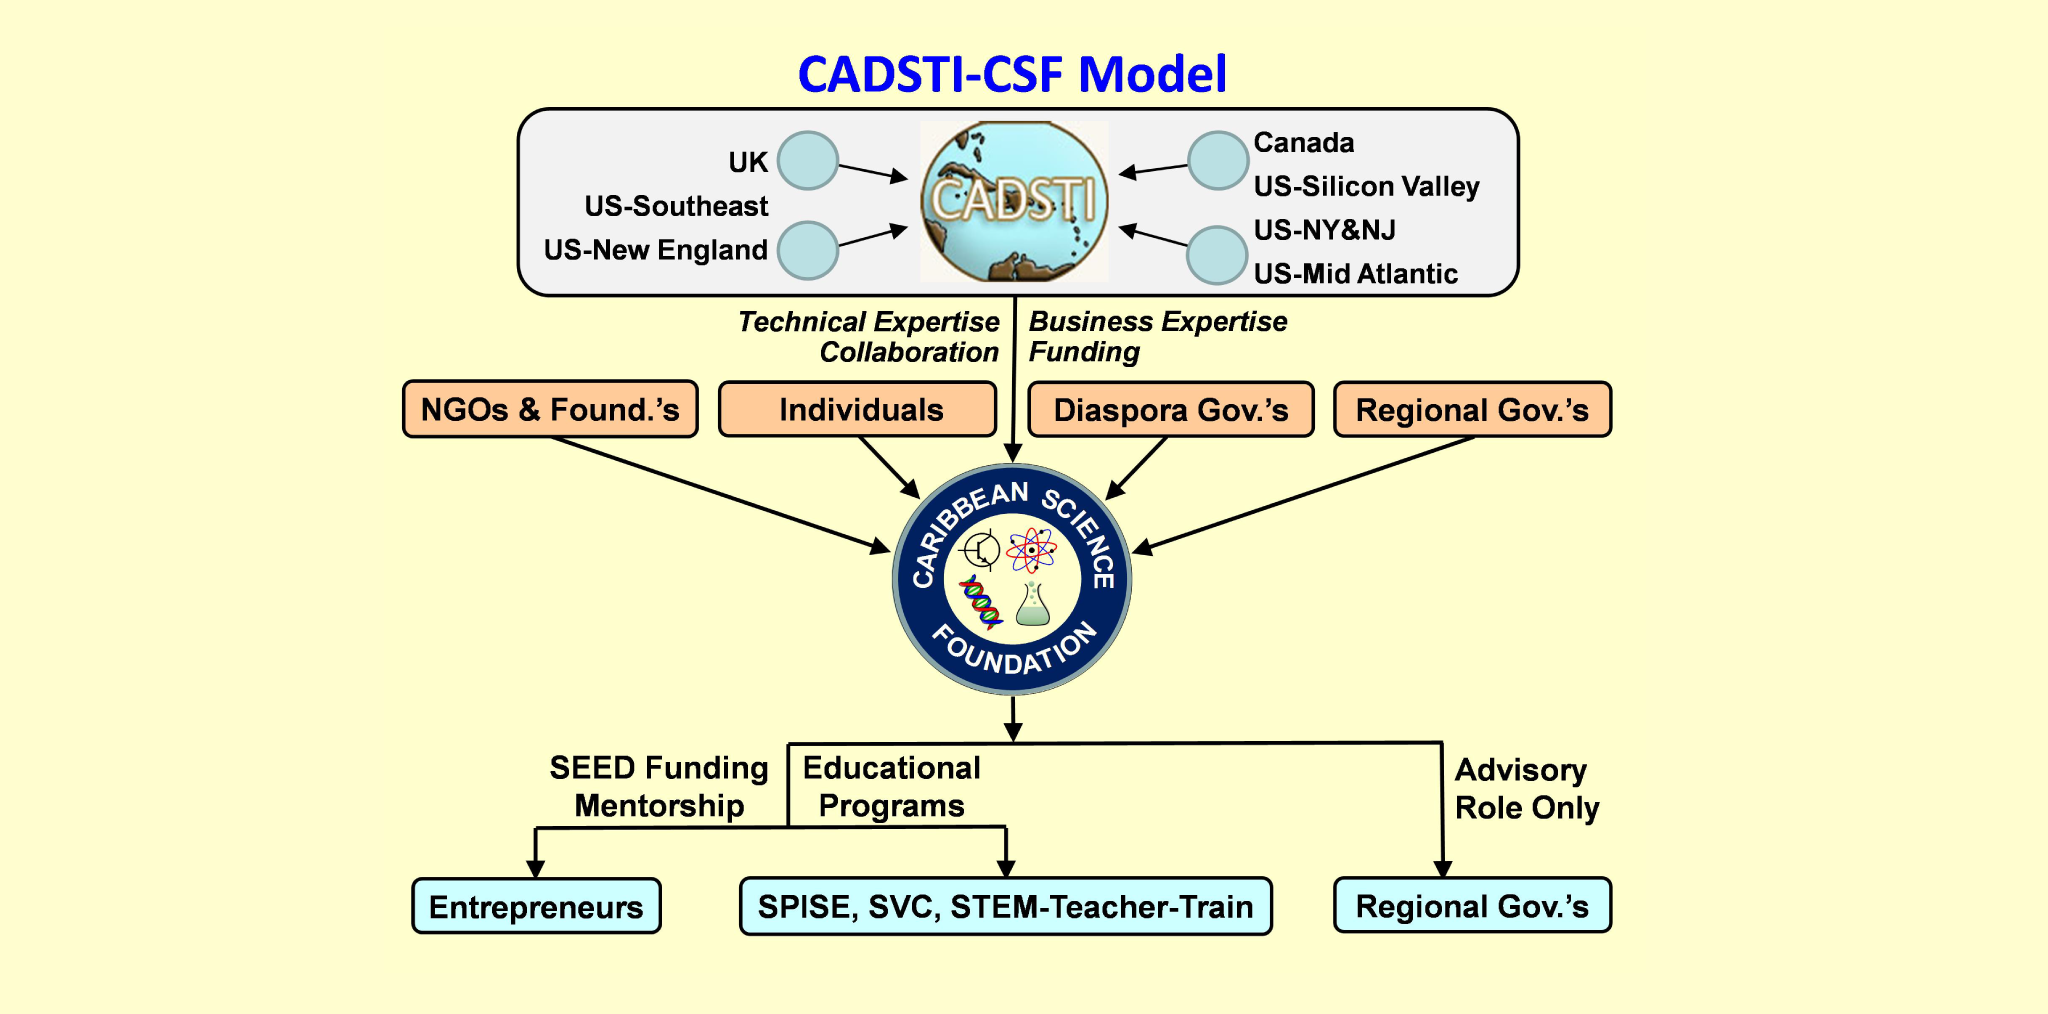 World Bank Study Supports CADSTI-CSF Model